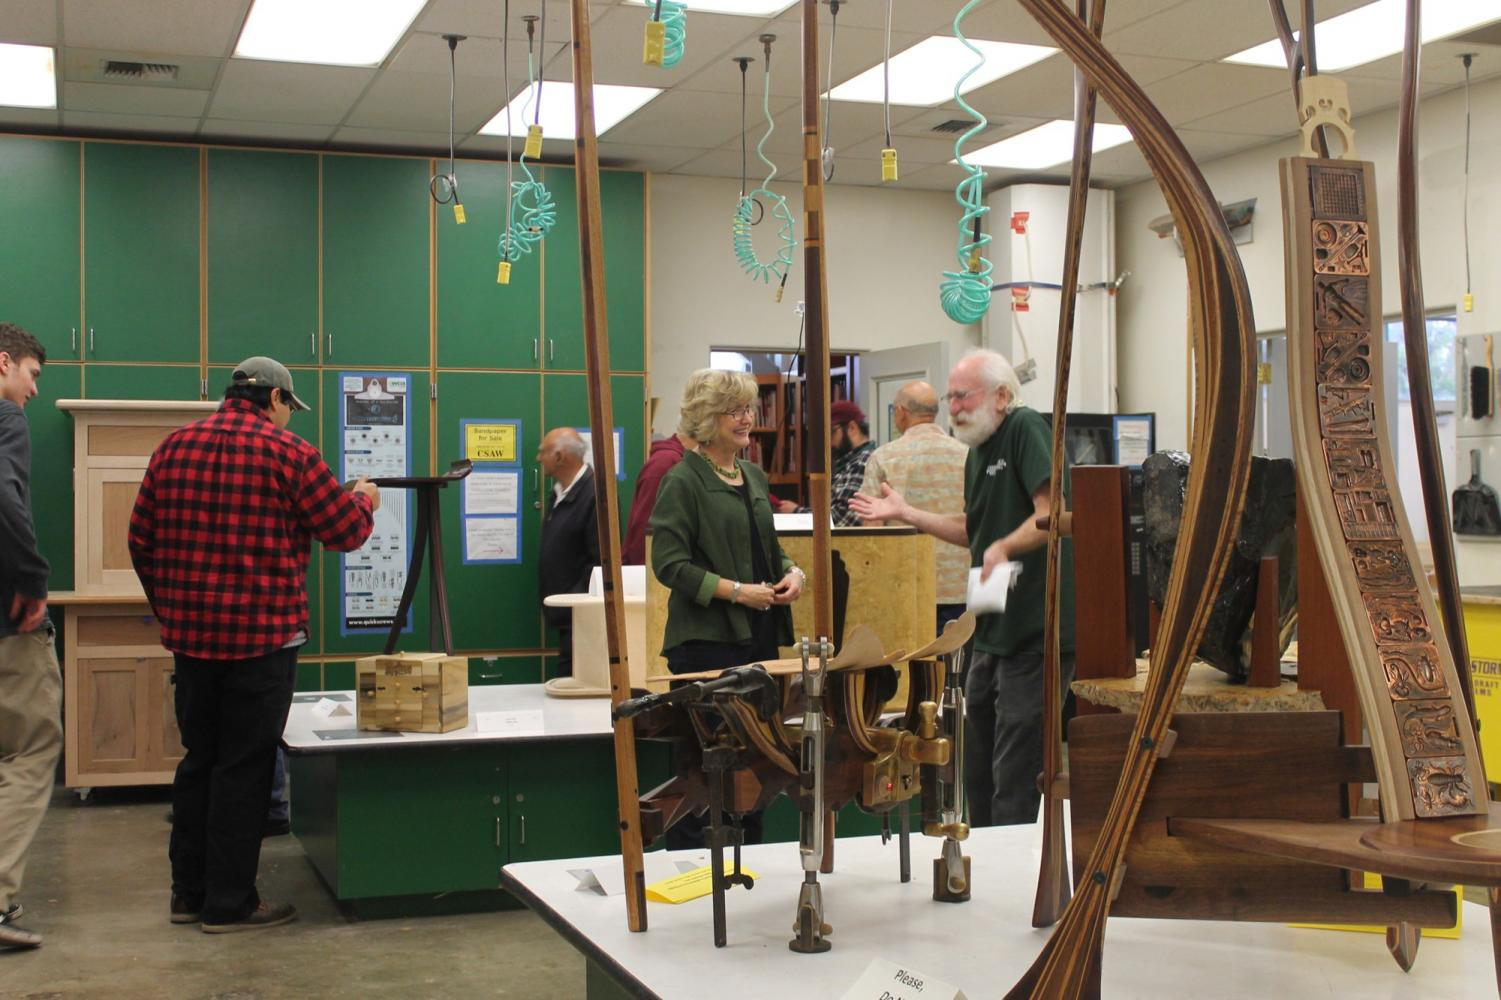 Attendees are able to view students woodwork projects. Showcased projects were created by students throughout the semester. Photo credit: Karina Quiran-Juarez